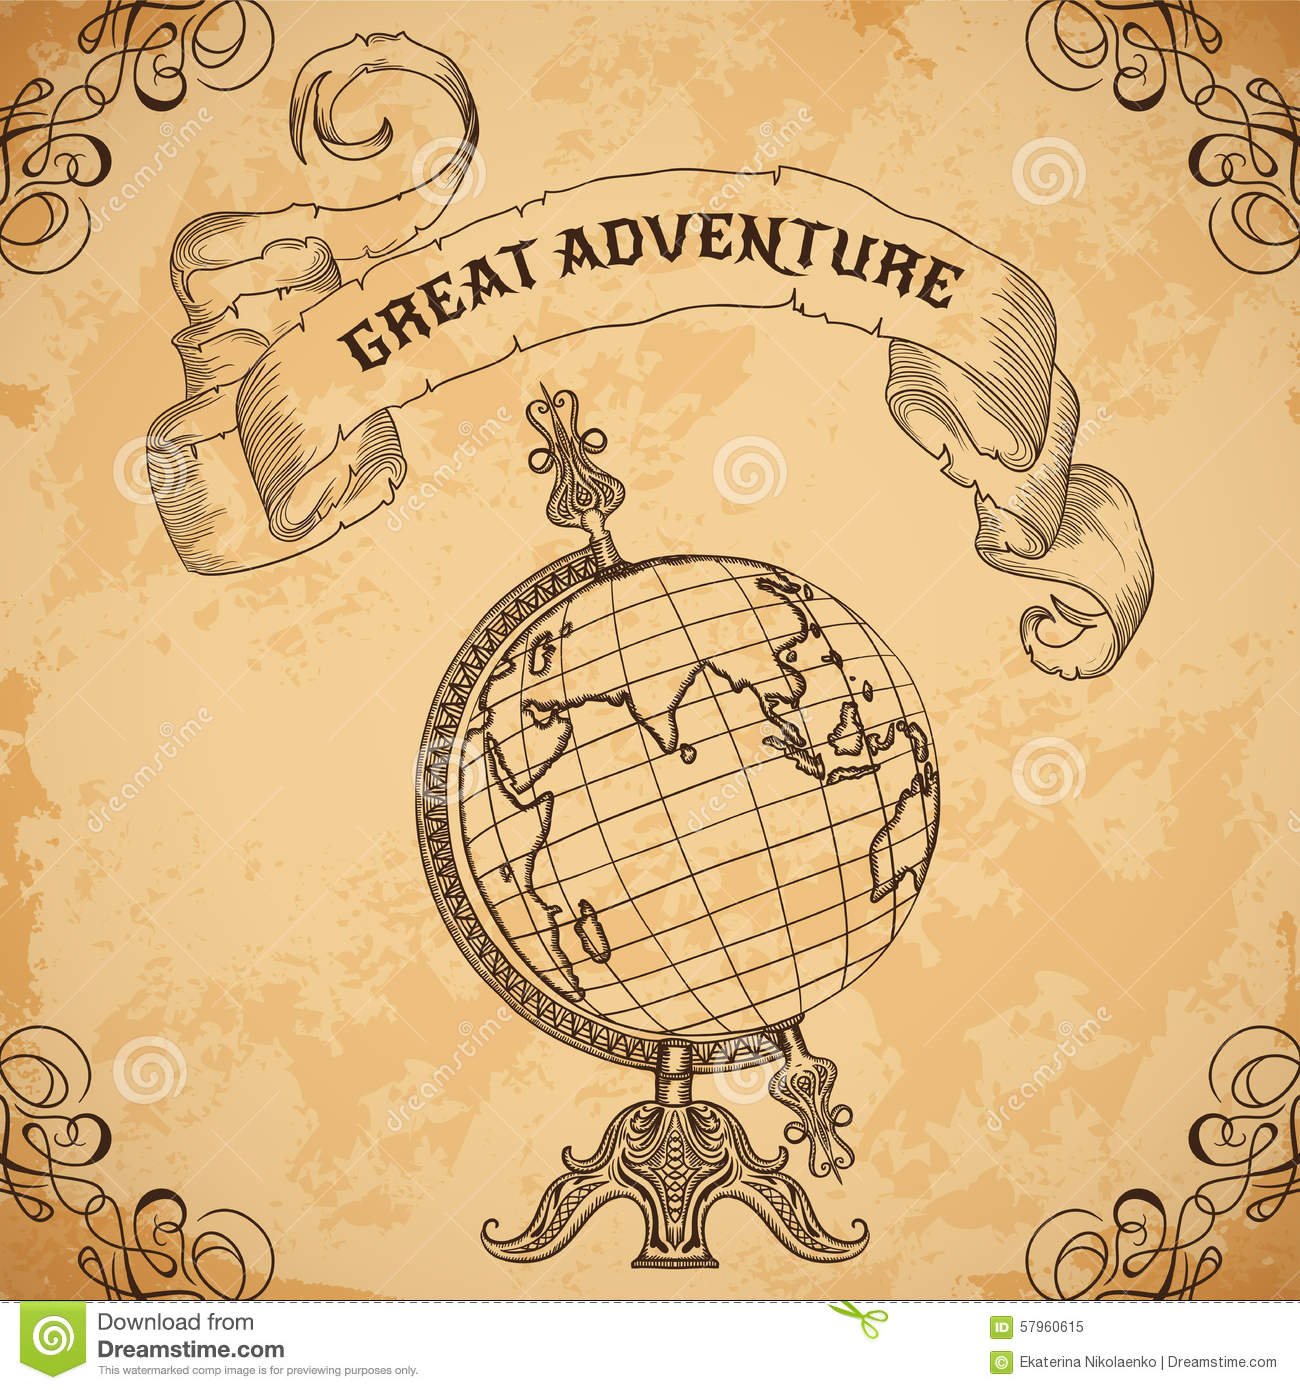 Classic Retro Illustration: Poster With Vintage Globe And Ribbon. Retro Hand Drawn